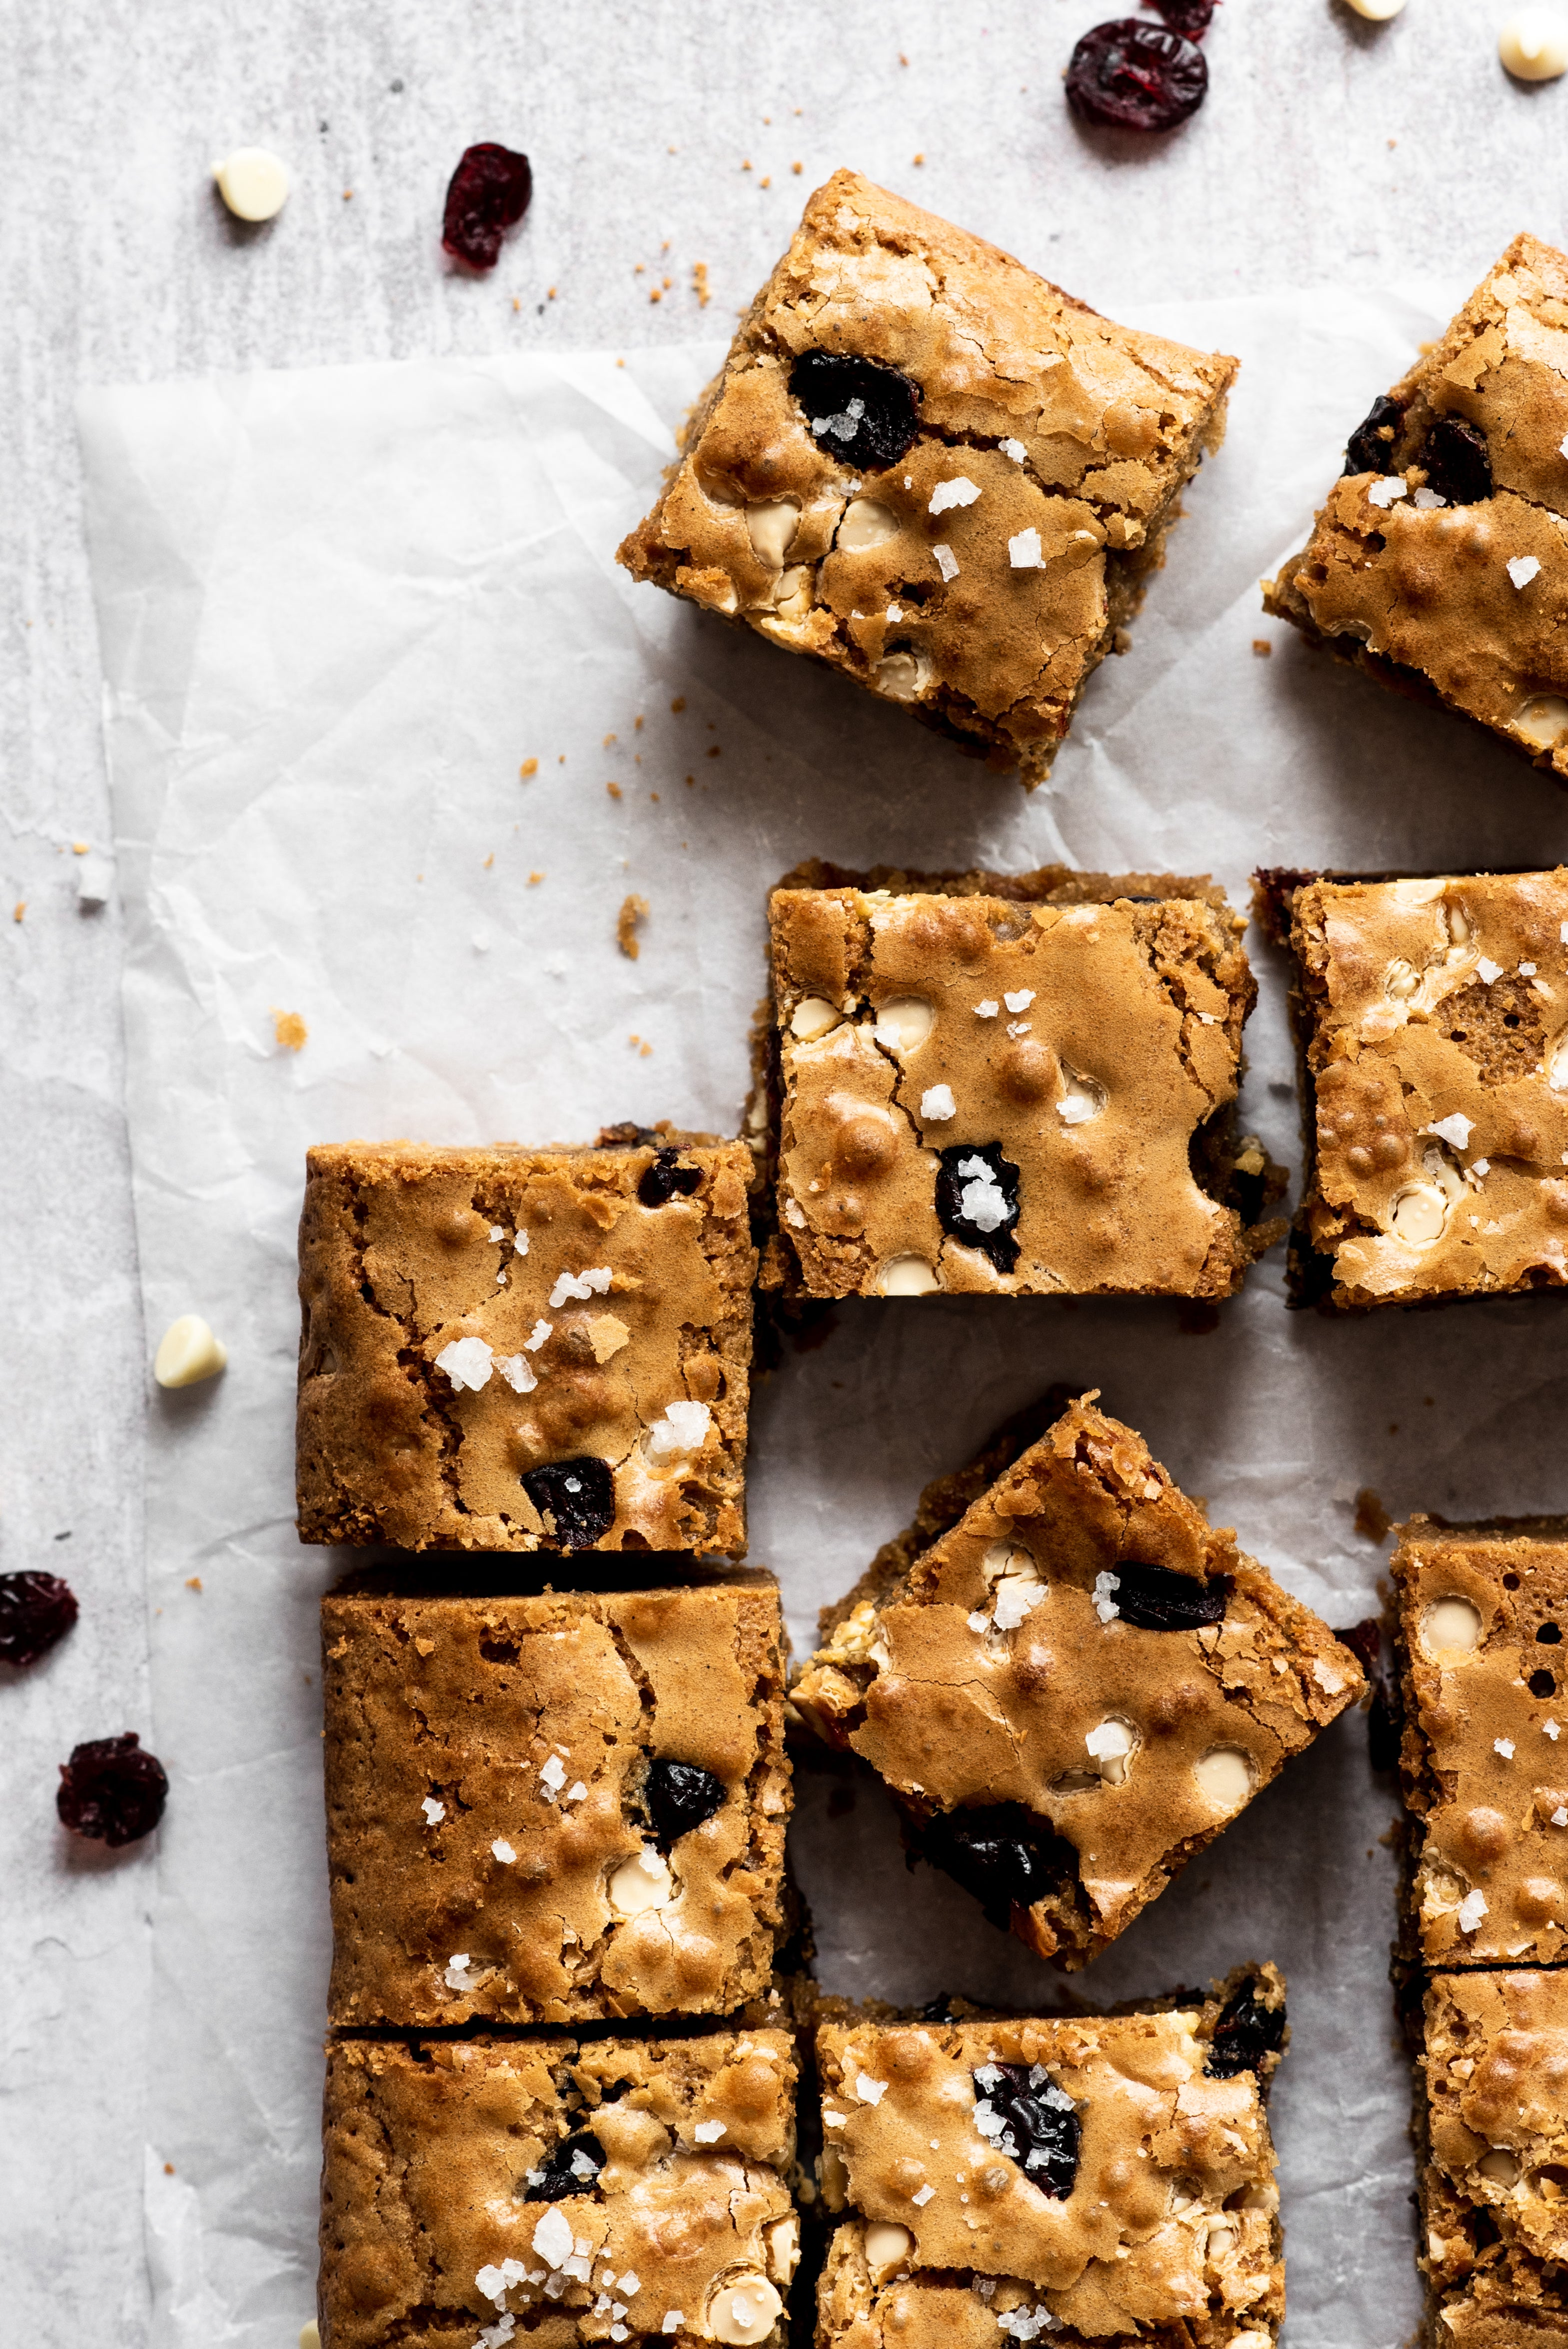 Blondies cut into squares laid on a surface